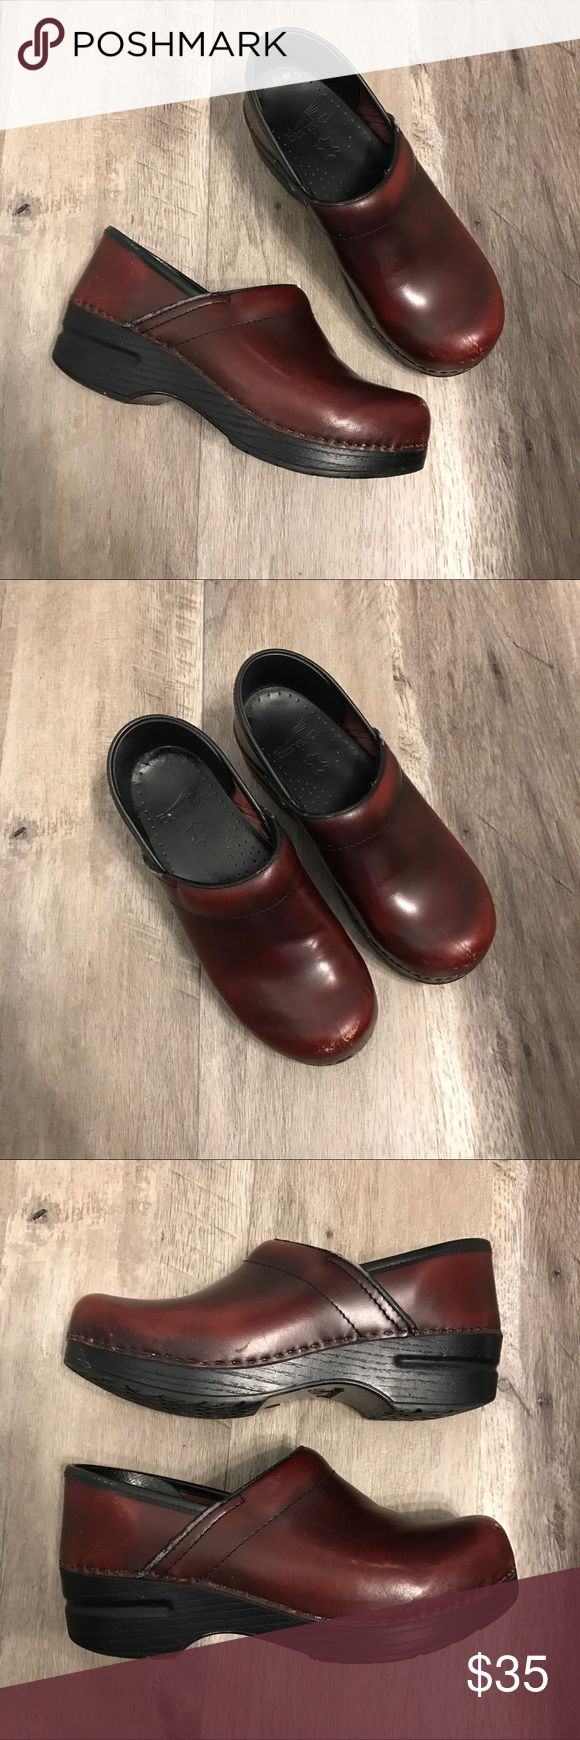 Dansko Shoes Women's Dansko maroon/red/brown Clog shoes. Professional nurse shoes. Size 36 EUR 5.5-6 US. Some scratches/ rubbing but overall in good used condition. See pictures as part of description. Dansko Shoes Mules & Clogs